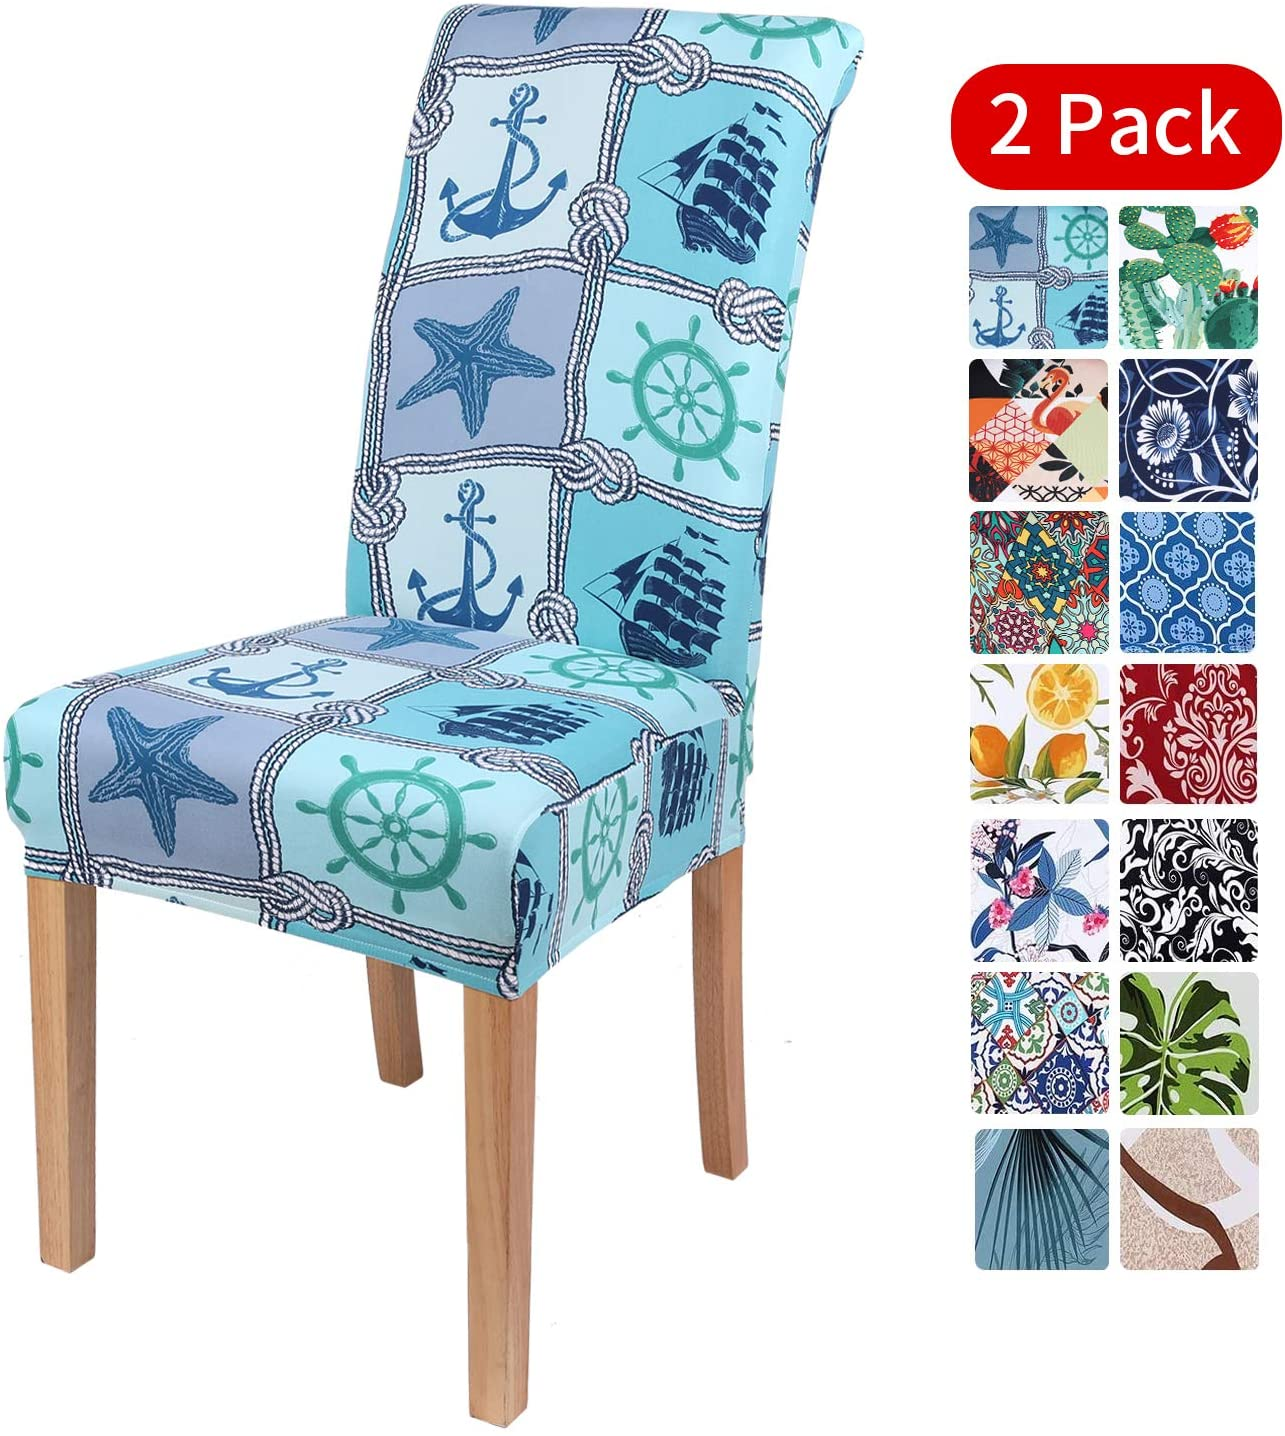 smiry Stretch Printed Dining Chair Covers, Spandex Removable Washable Dining Chair Protector Slipcovers for Home, Kitchen, Party, Restaurant - Set of 2, Blue Ocean